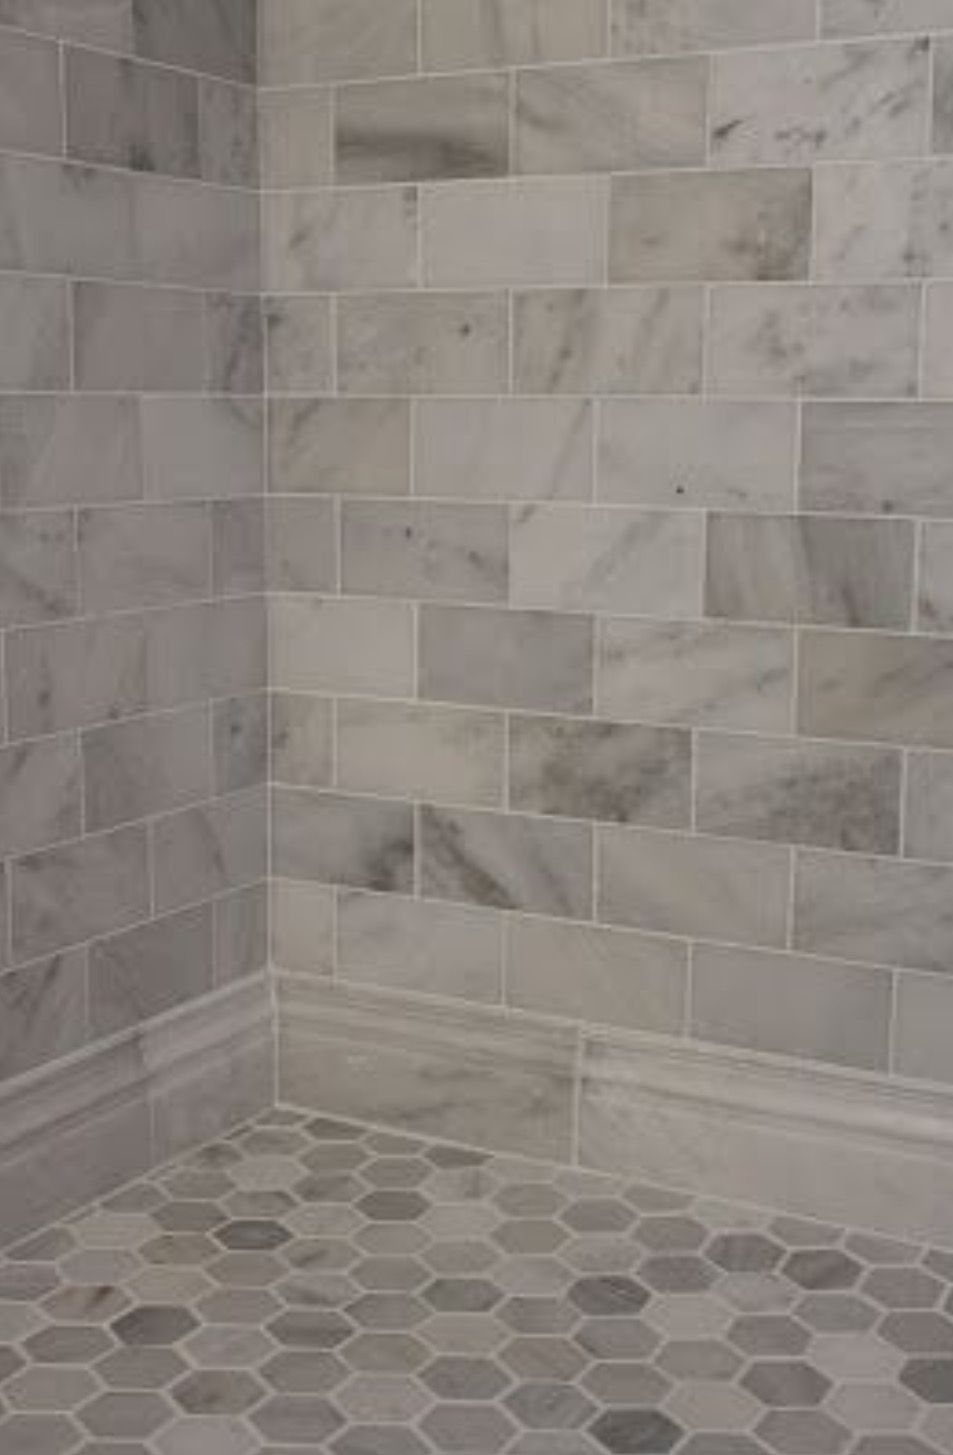 Carrera marble subway tiles and honed marble hexagon floor tiles bathroom remodel pinterest Marble hex tile bathroom floor